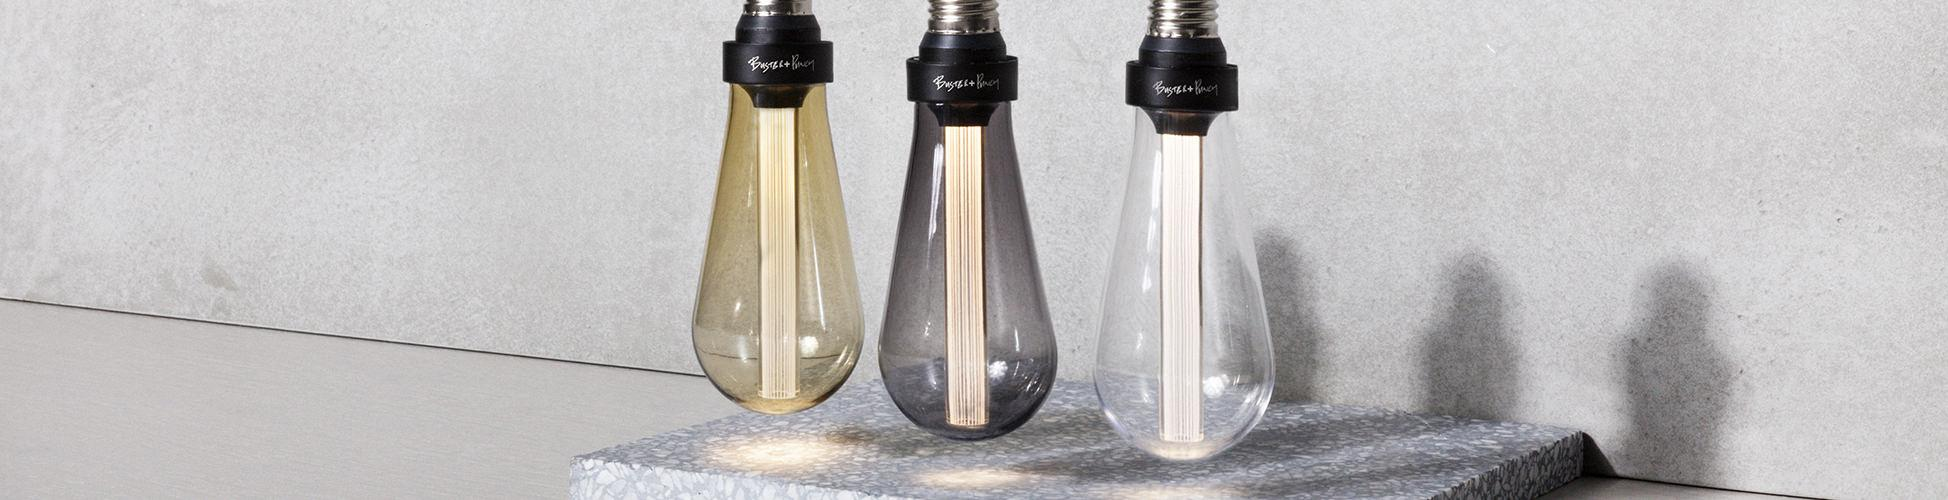 light bulb, led, bulb, buster, punch, glass, smoked, gold, crystal, teardrop, tube